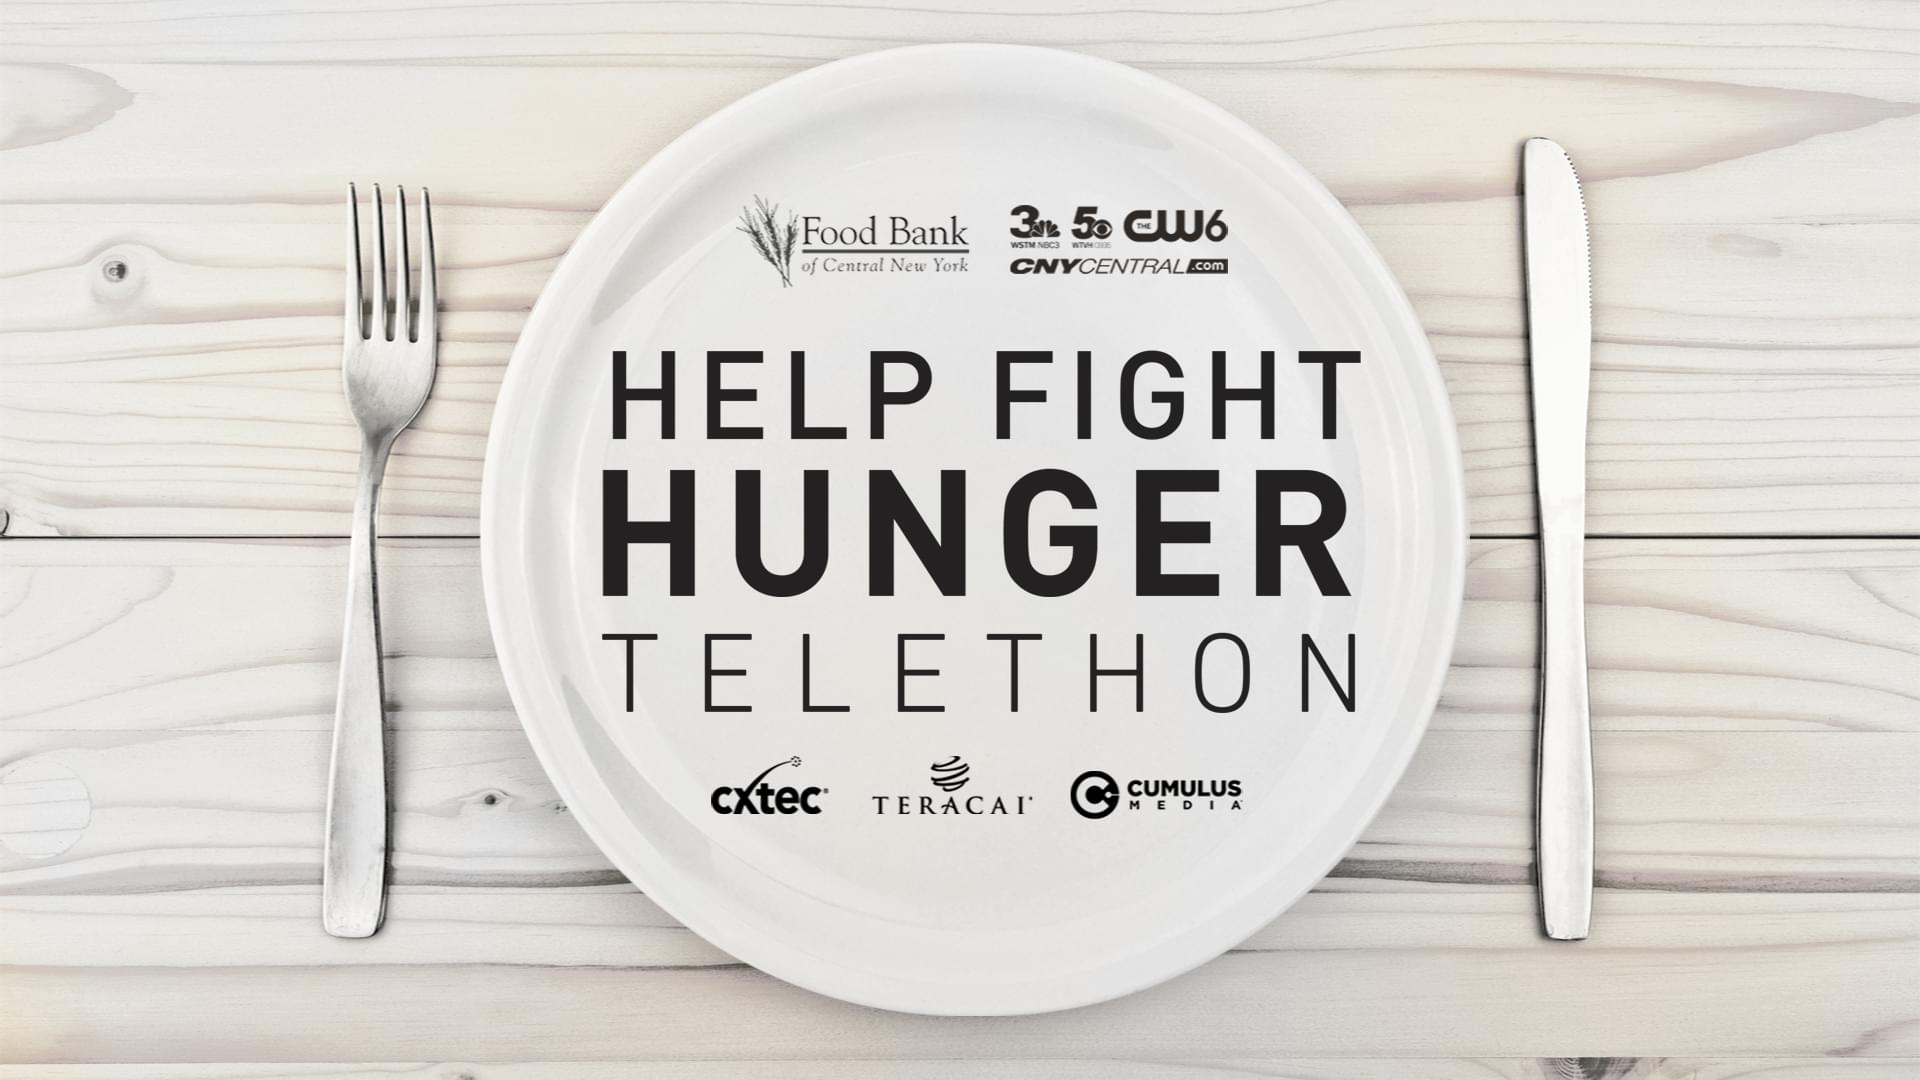 Help Fight Hunger Telethon | January 23rd